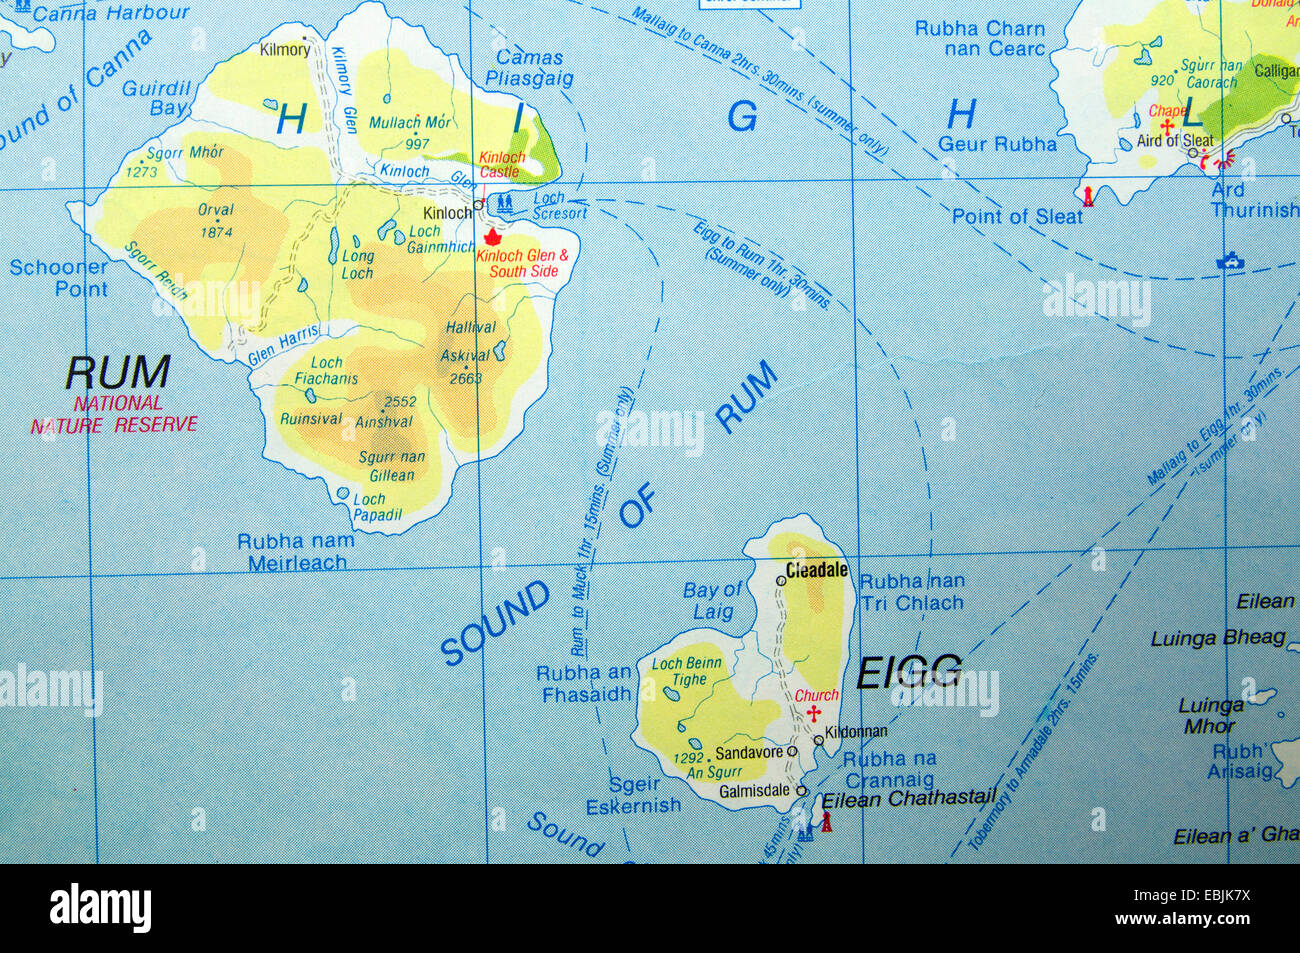 Road Map Of Rum And Eigg Island Scotland Stock Photo 76012942 Alamy